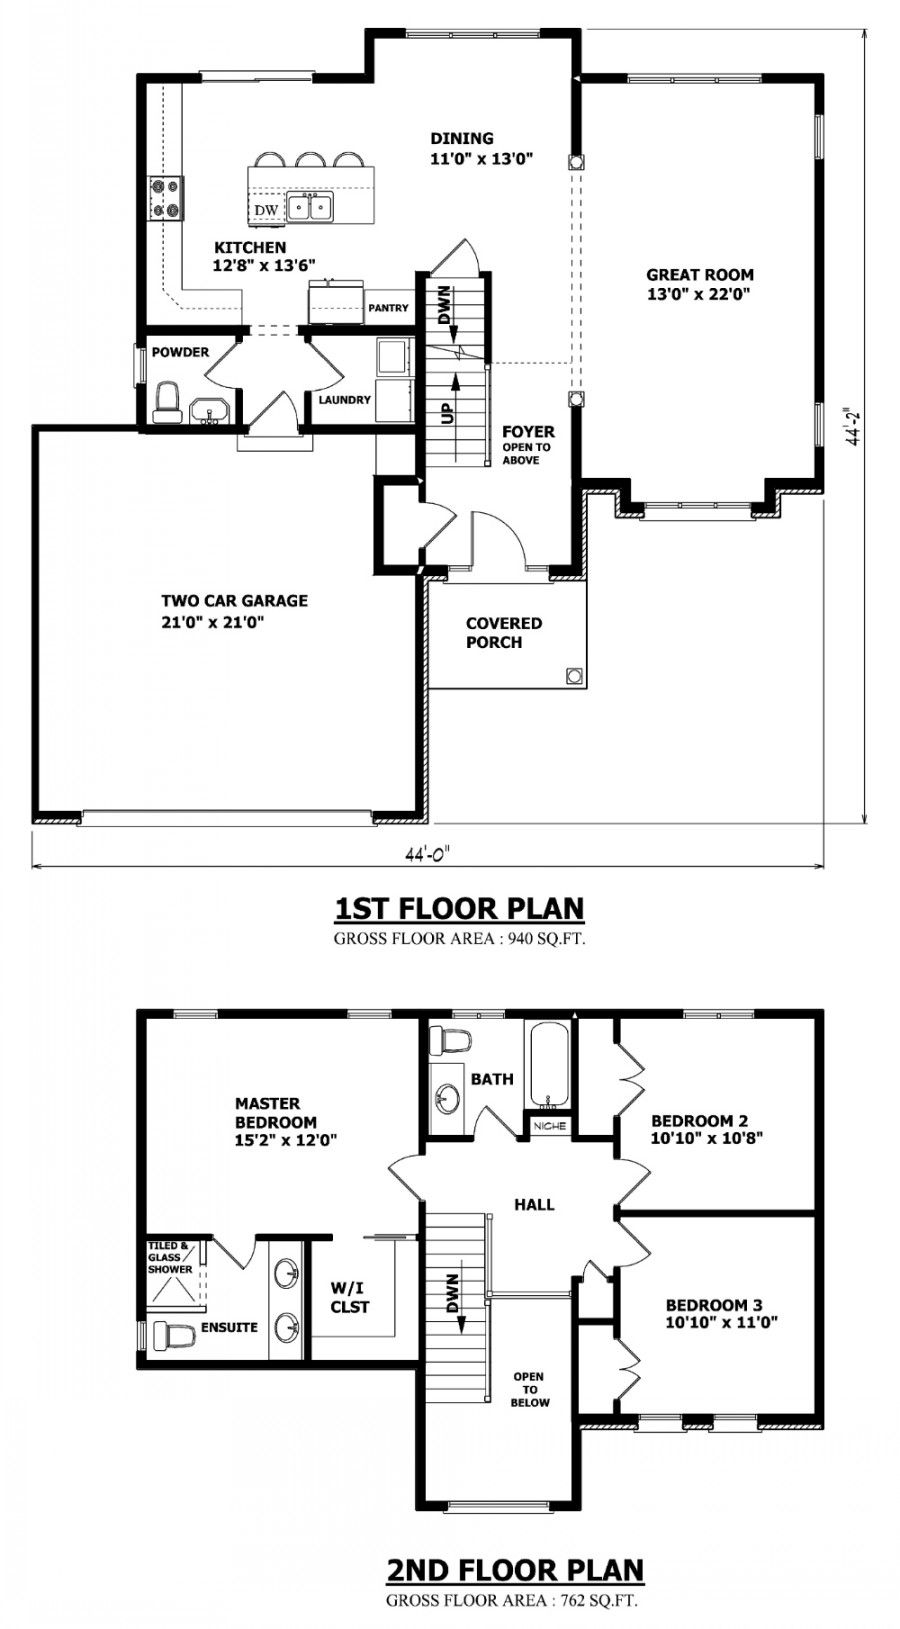 Home designs custom house plans stock house plans amp for 2 car garage floor plans